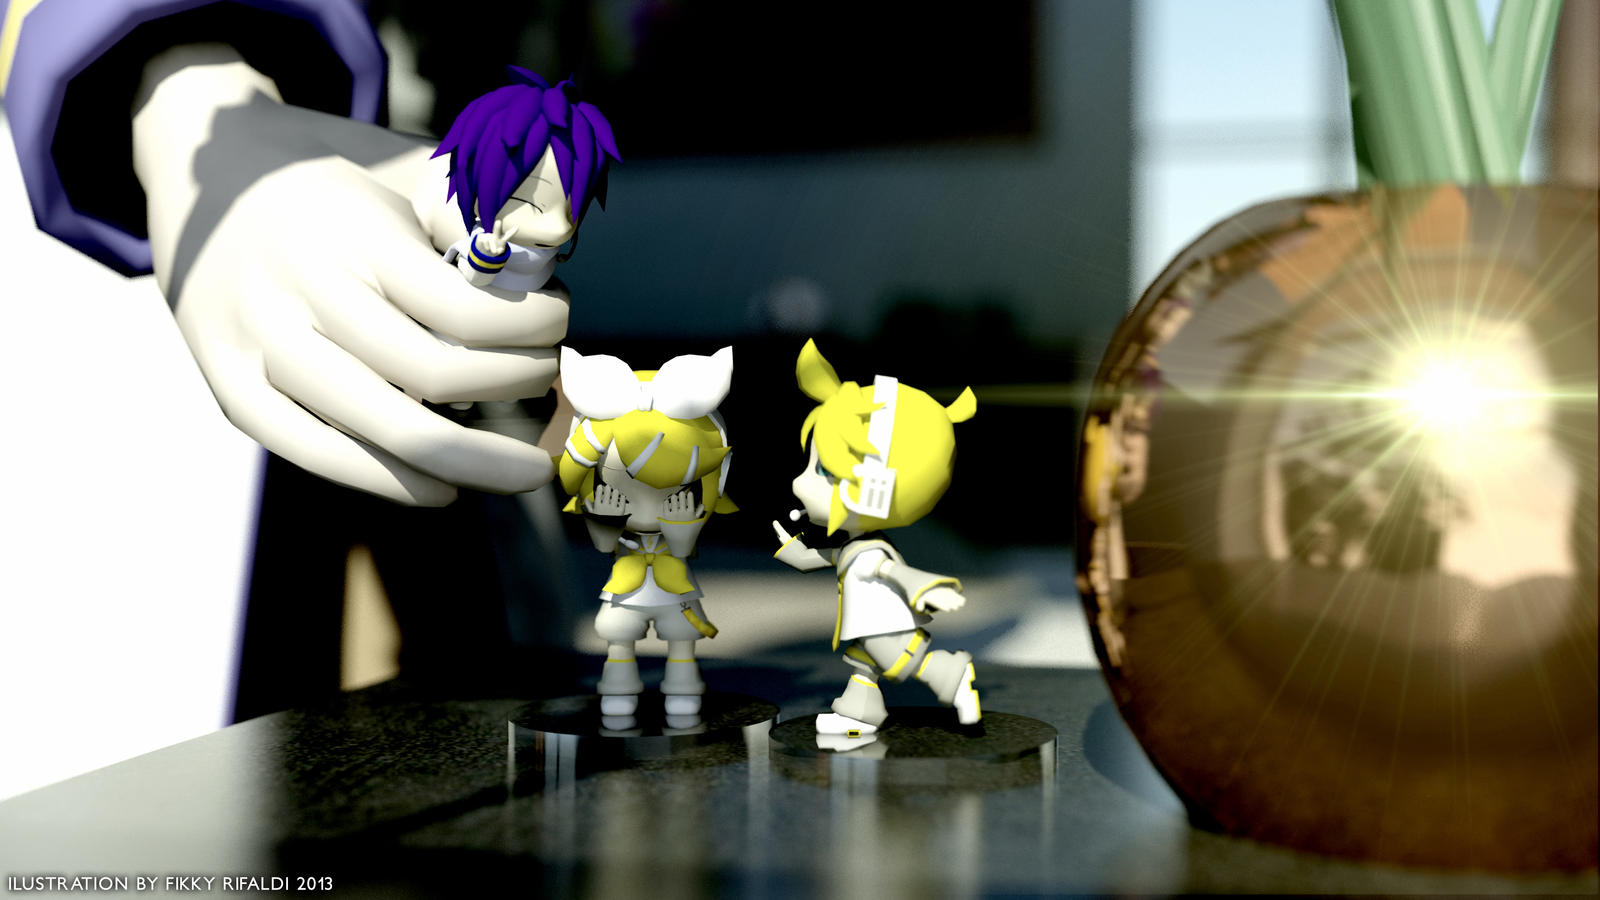 Nendoroid, Can I take one for my collections? by kurorofikkykakao